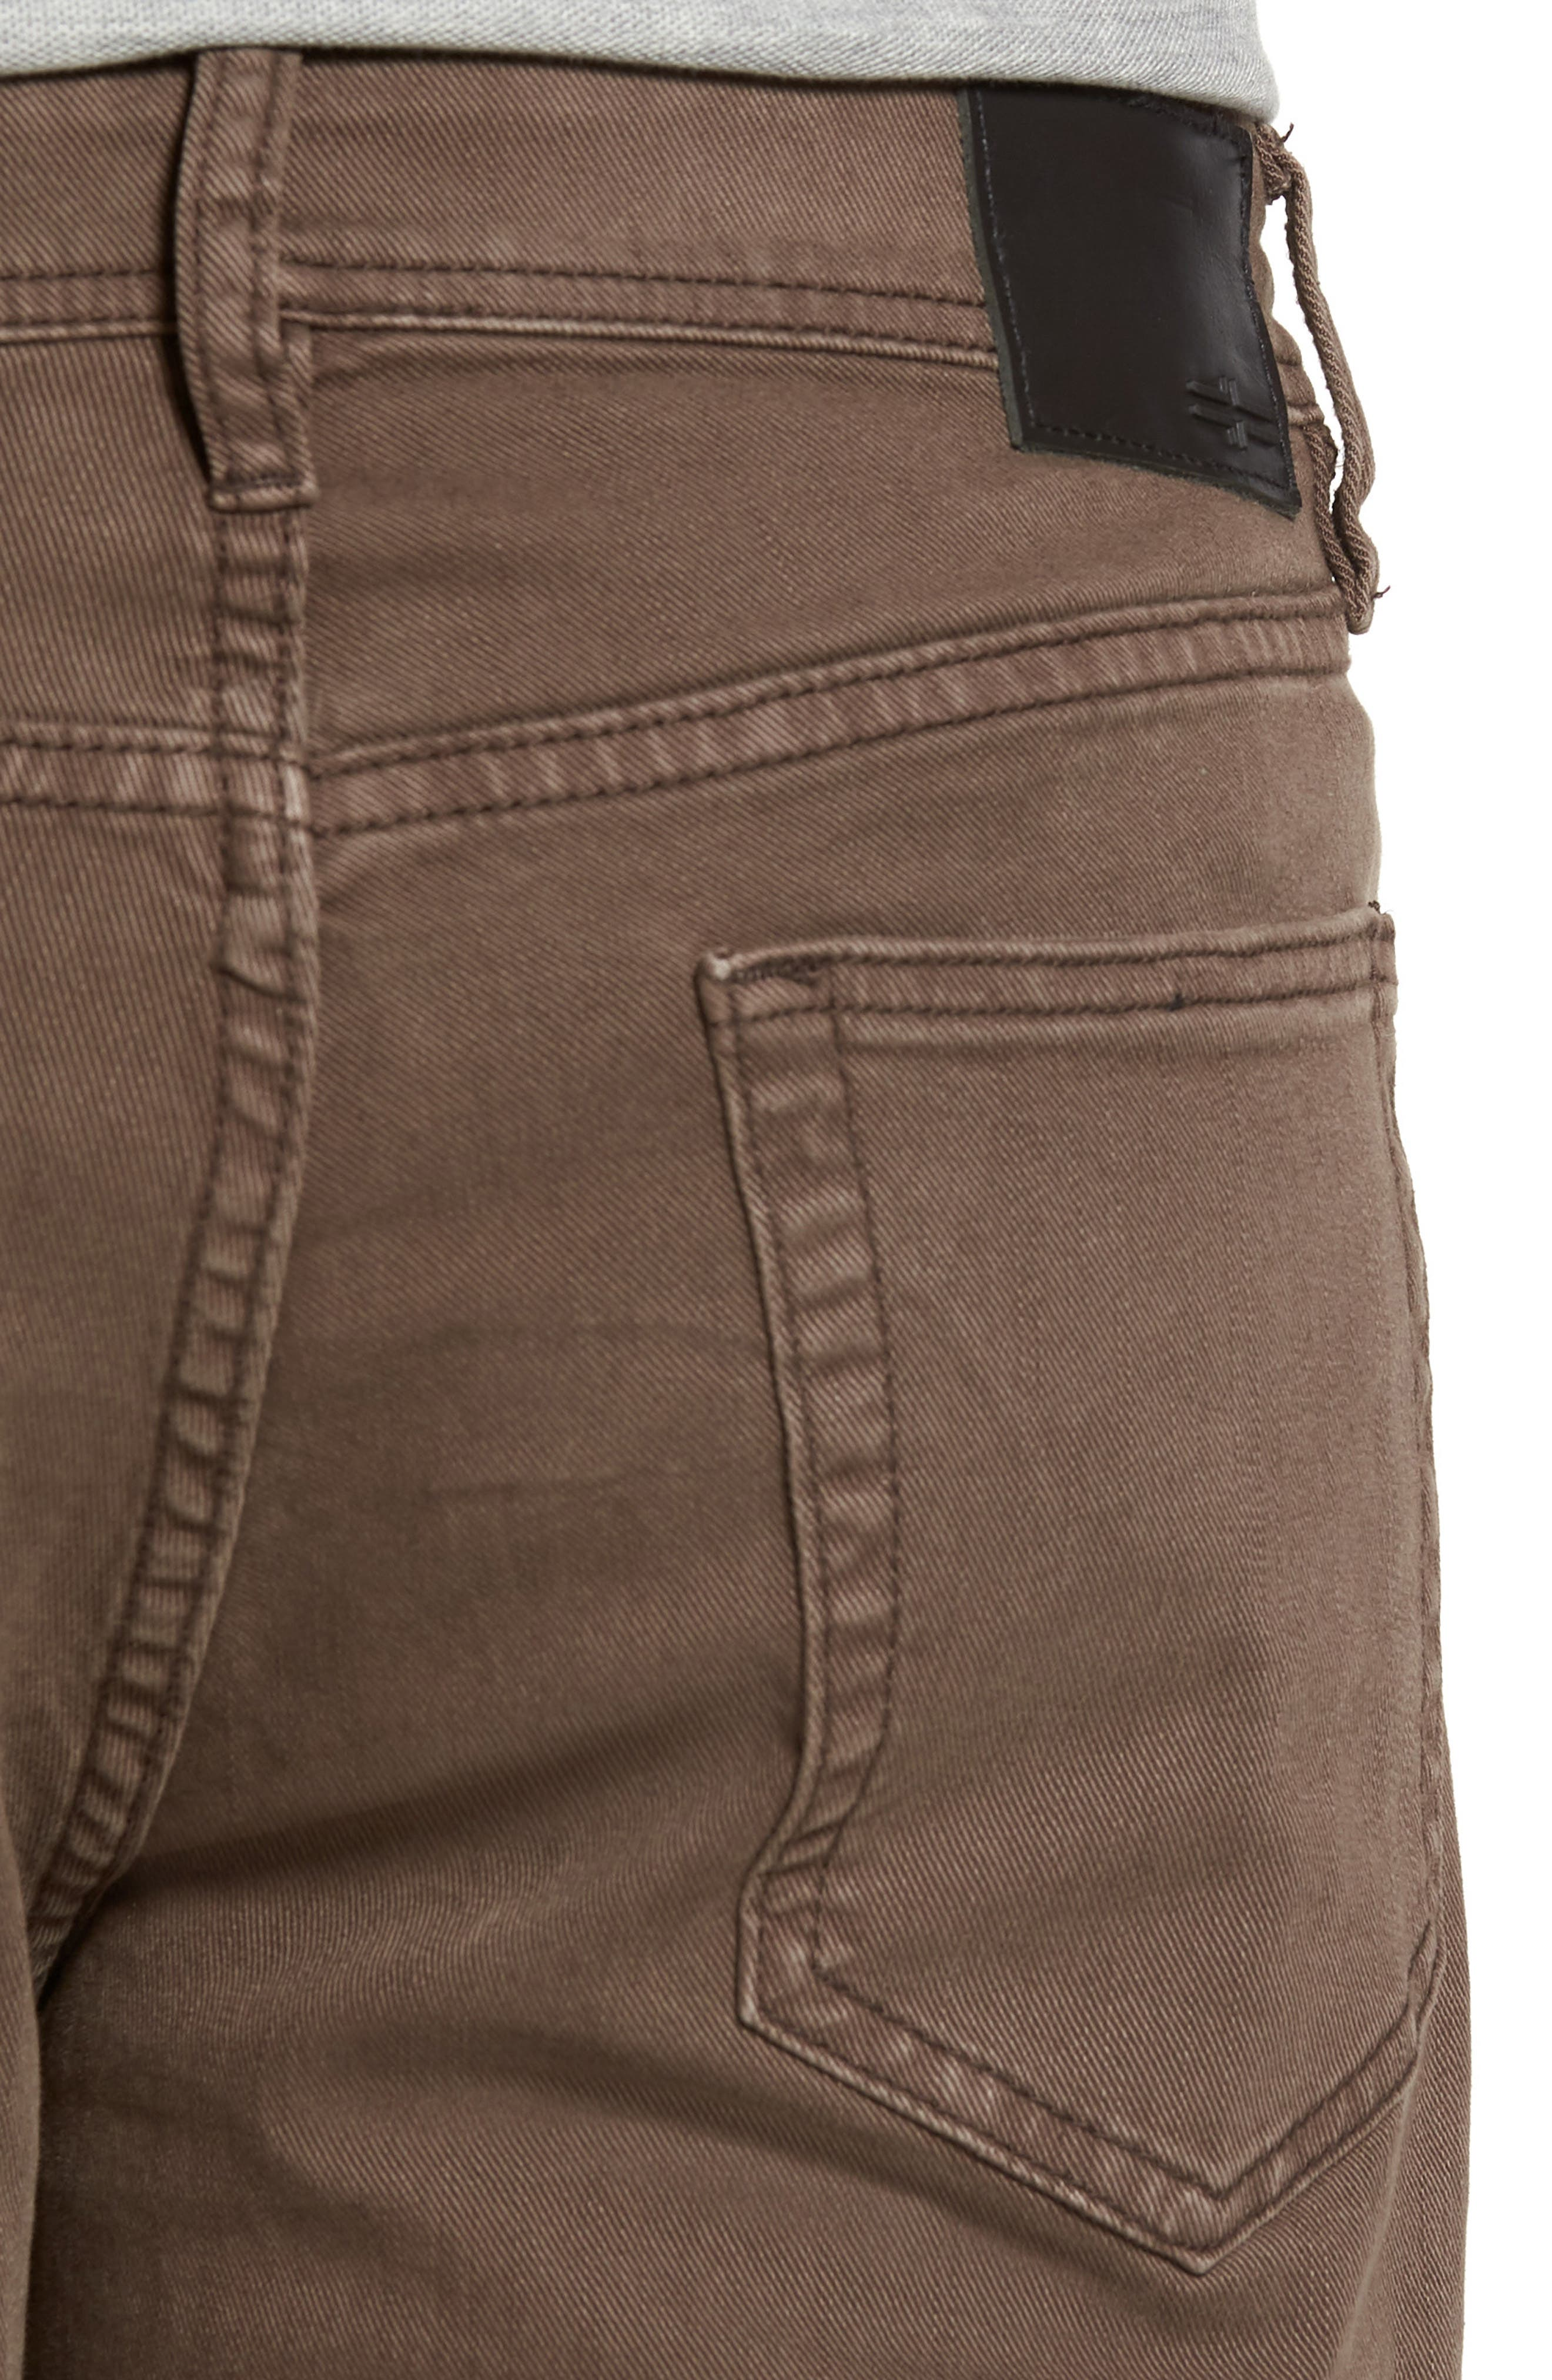 Jeans Co. Regent Relaxed Fit Jeans,                             Alternate thumbnail 4, color,                             Tobacco Leaf